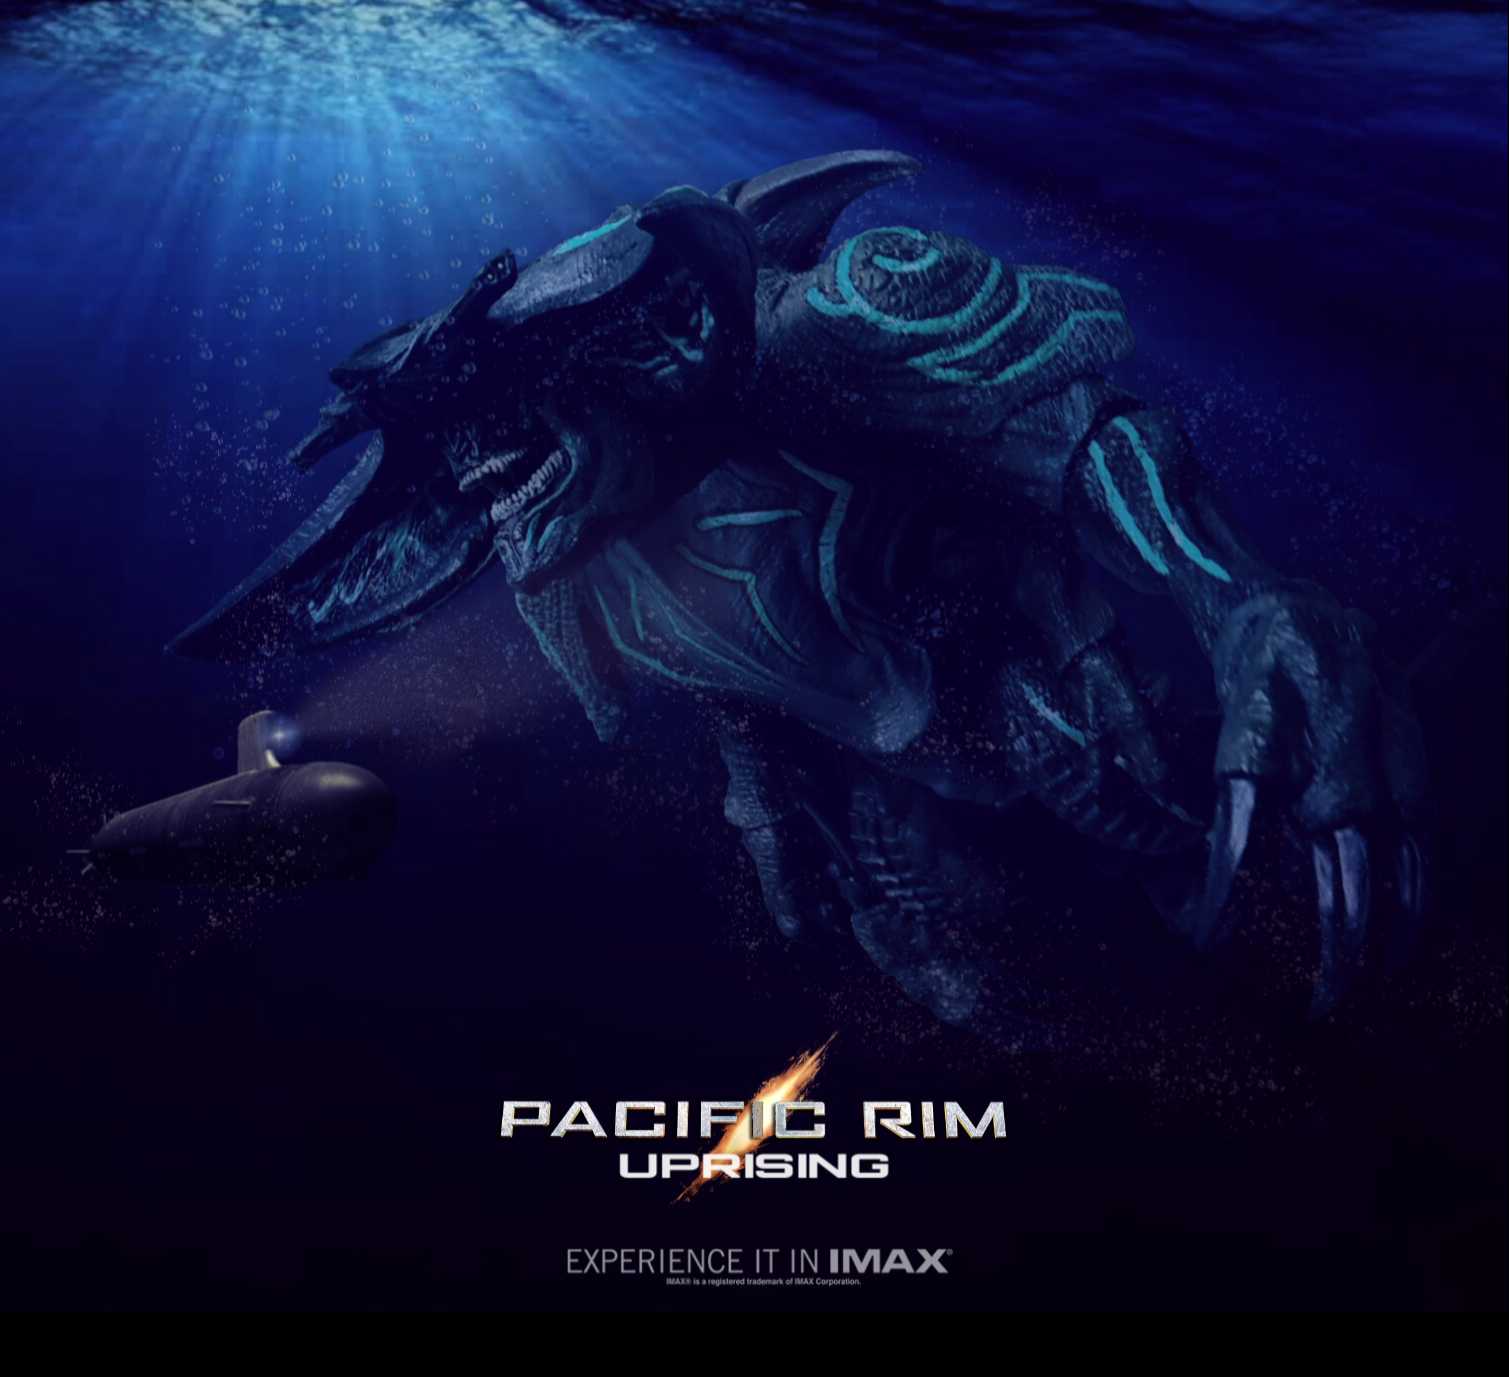 PACIFIC RIM UPRISING. IMAX Poster by Pacific Shatterdome ... Pacific Rim Imax Poster